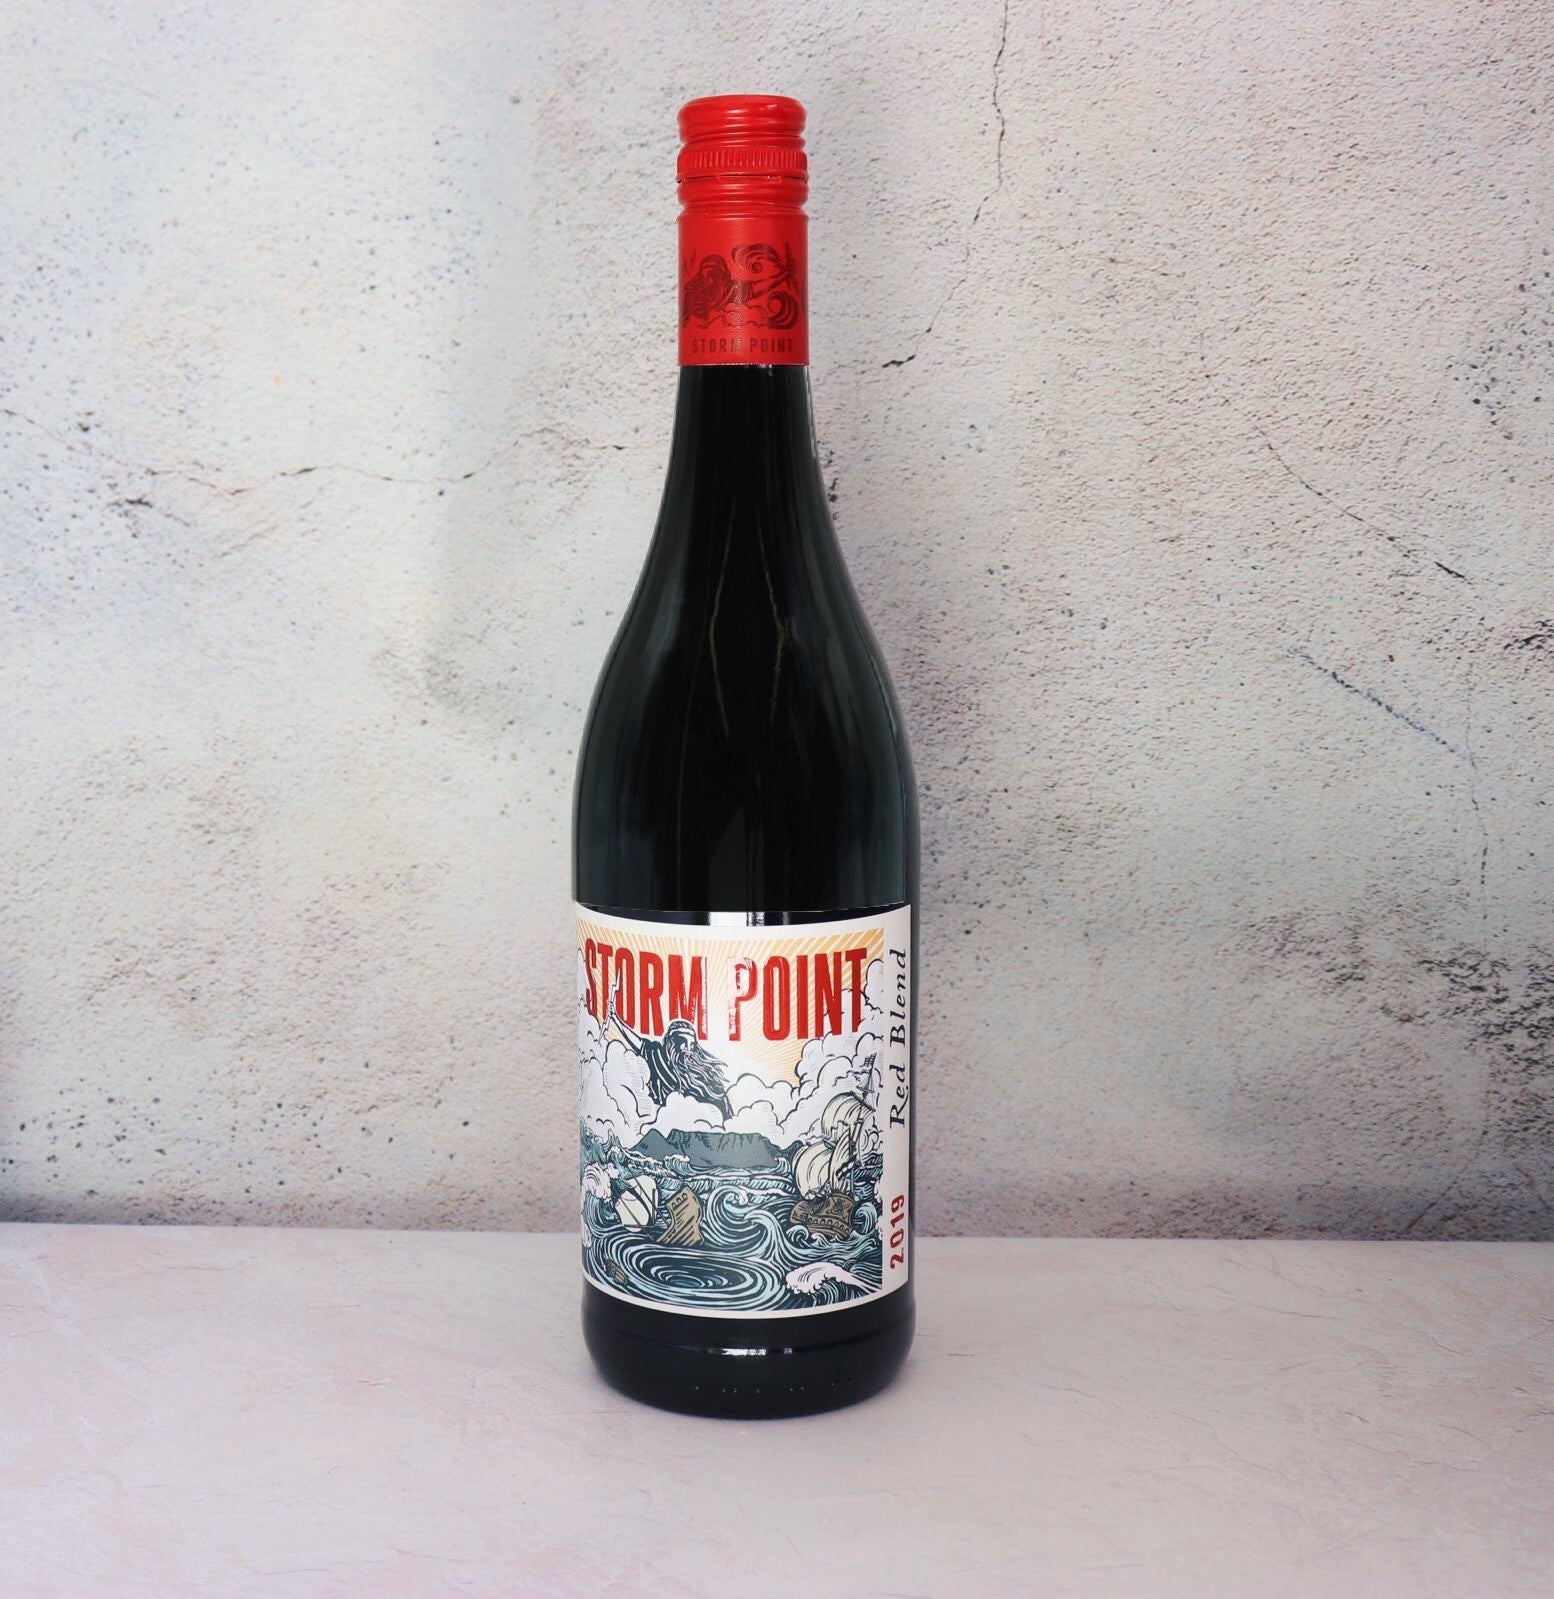 Storm Point Wines Red Blend